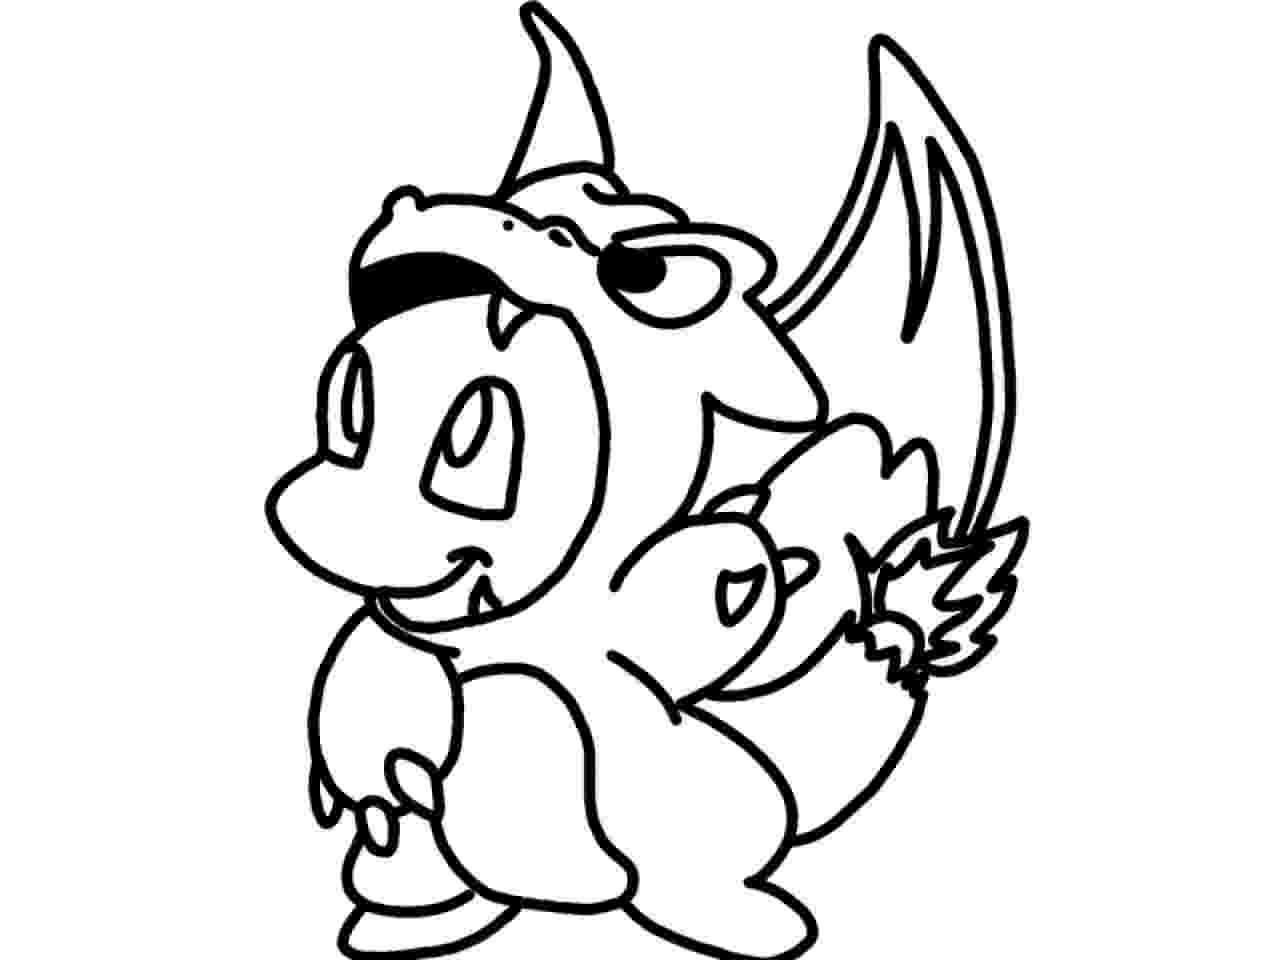 charmander colouring pages pokemon charmander drawing at getdrawingscom free for colouring pages charmander